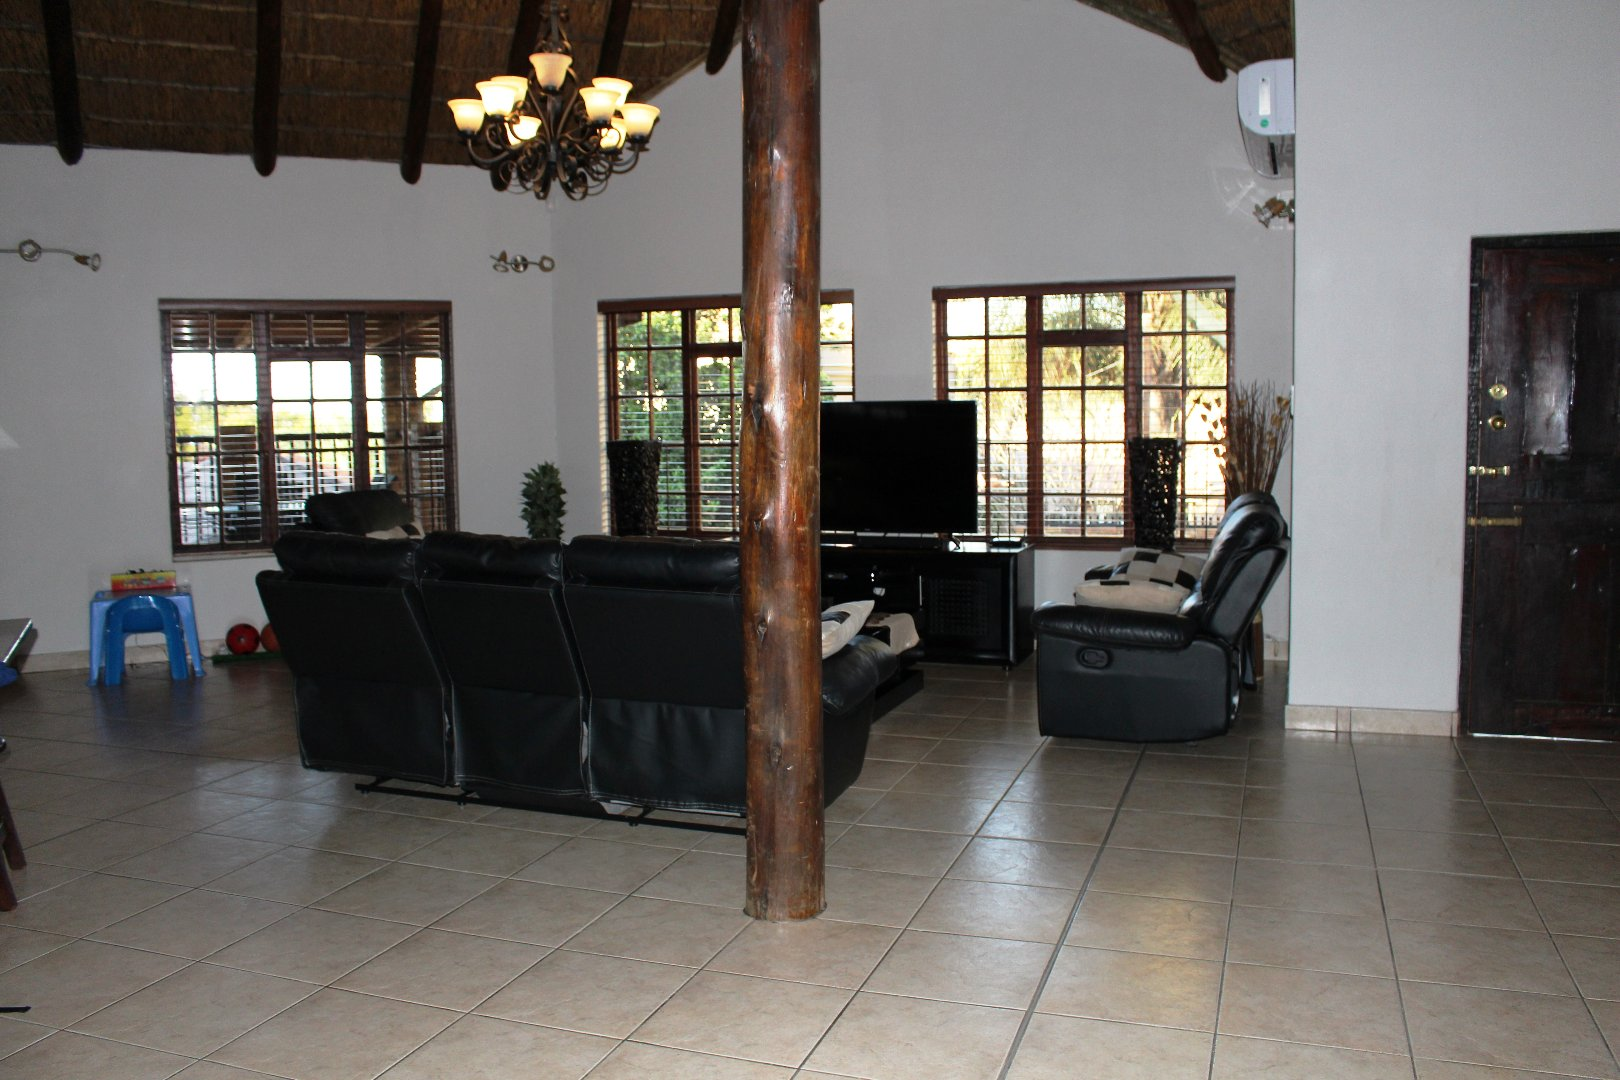 4 Bedroom House for sale in Montana Park ENT0058051 : photo#17